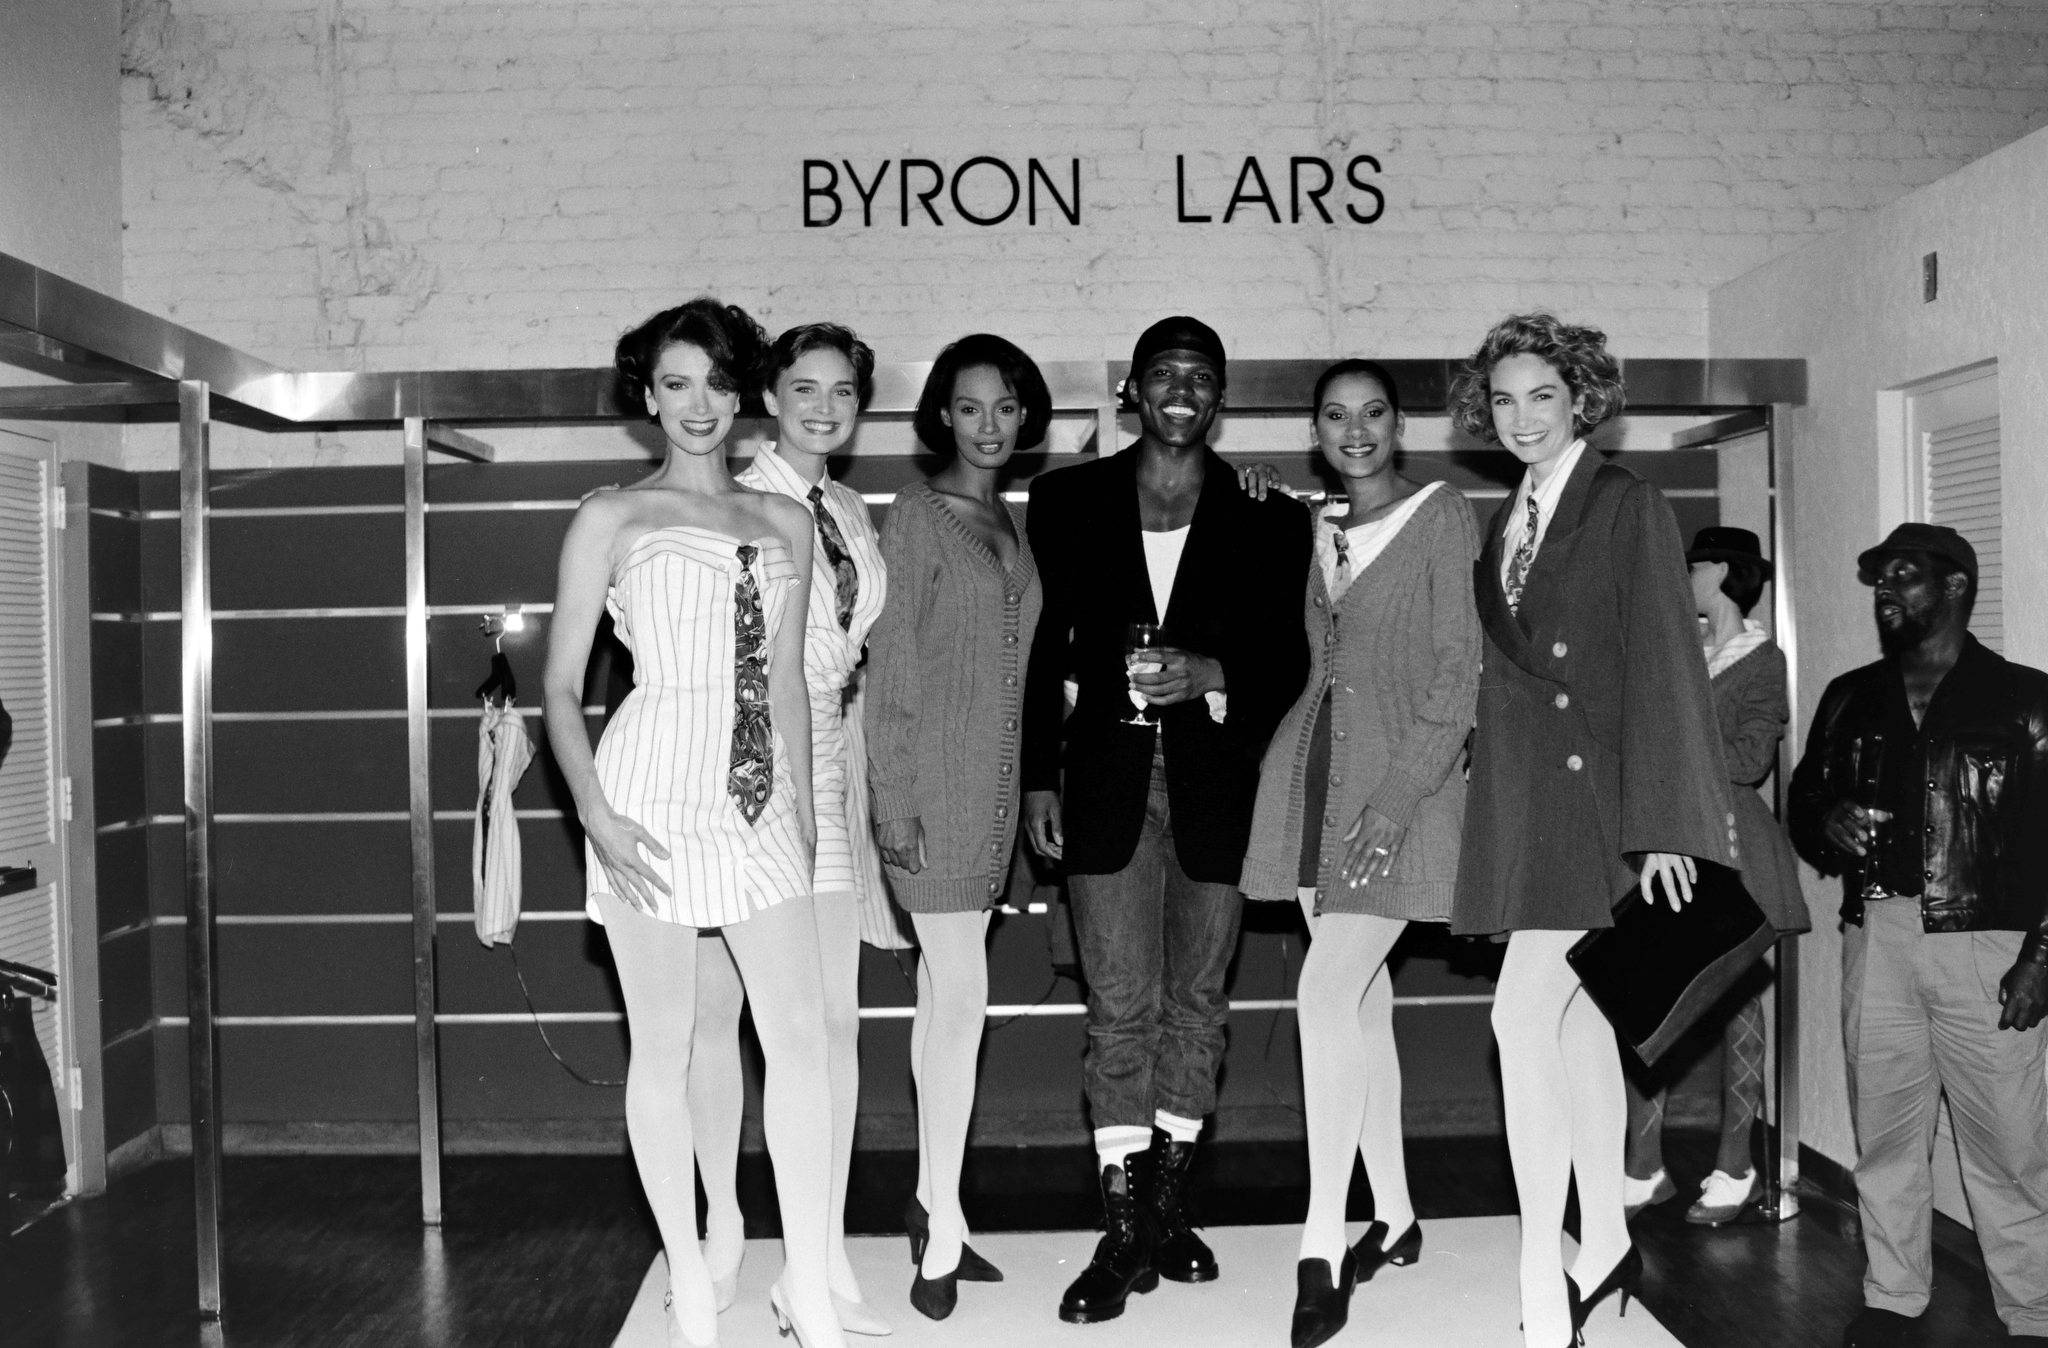 Designer Byron Lars and models in his spring 1992 collection at the debut of his Bloomingdale's in-store boutique on September 13, 1991.